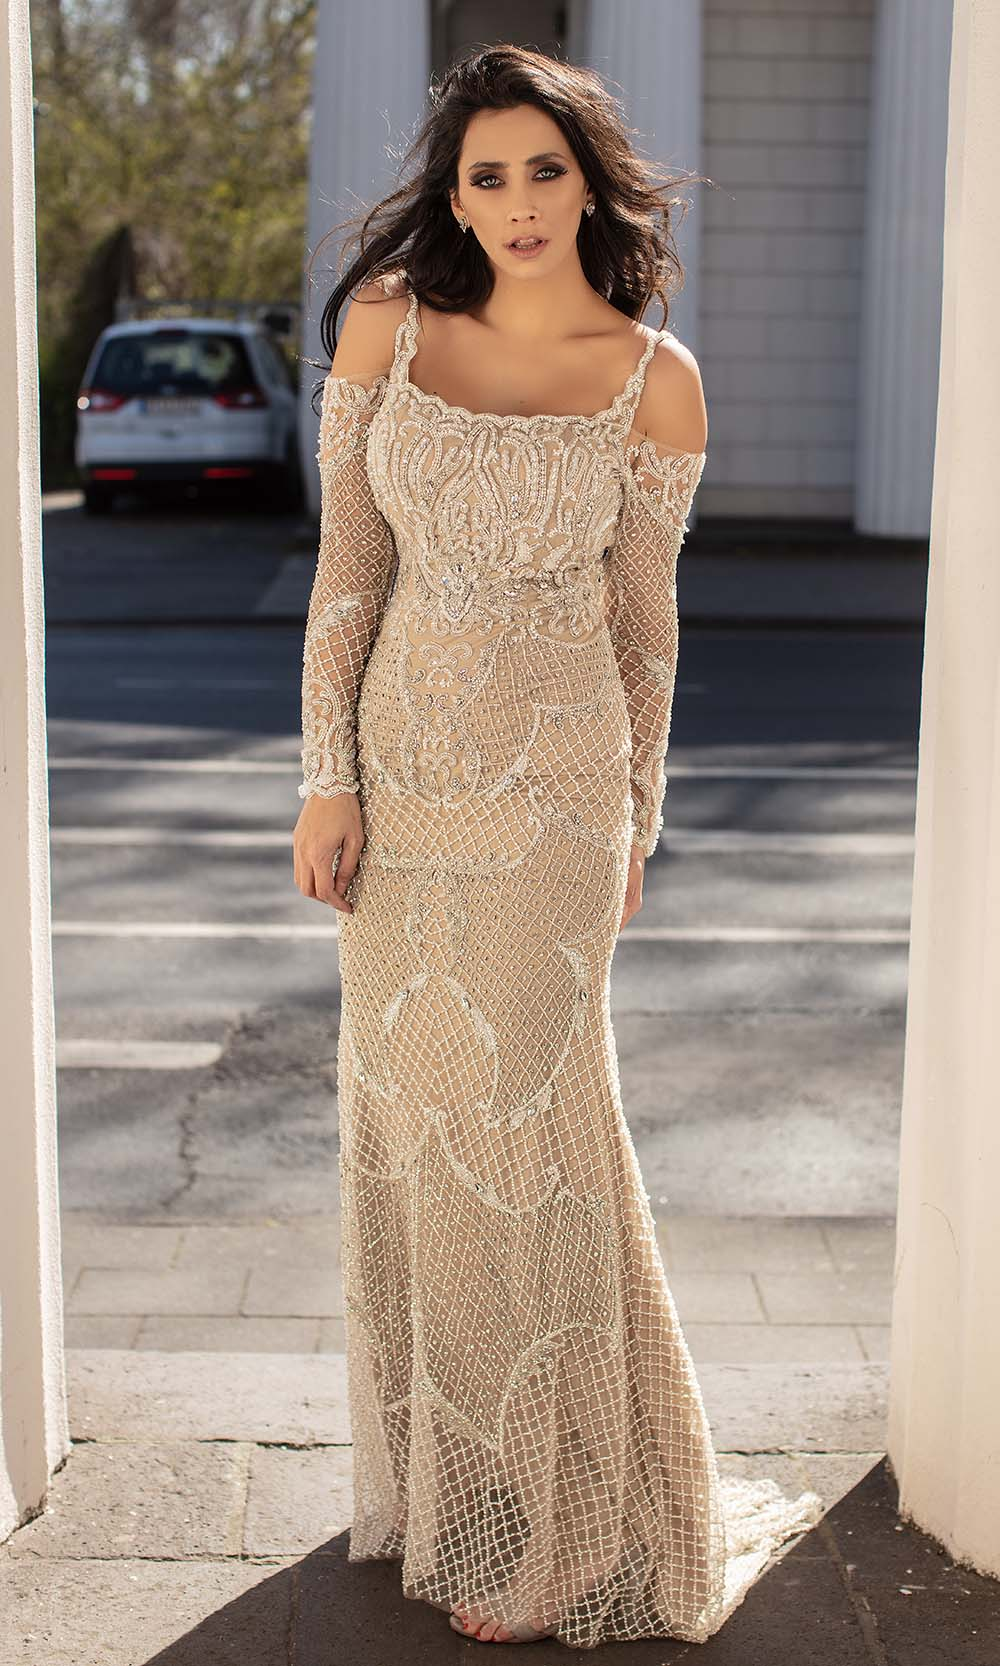 Chic and Holland - HF1568 Cold Shoulder Long Sleeves Dress from Chic and Holland